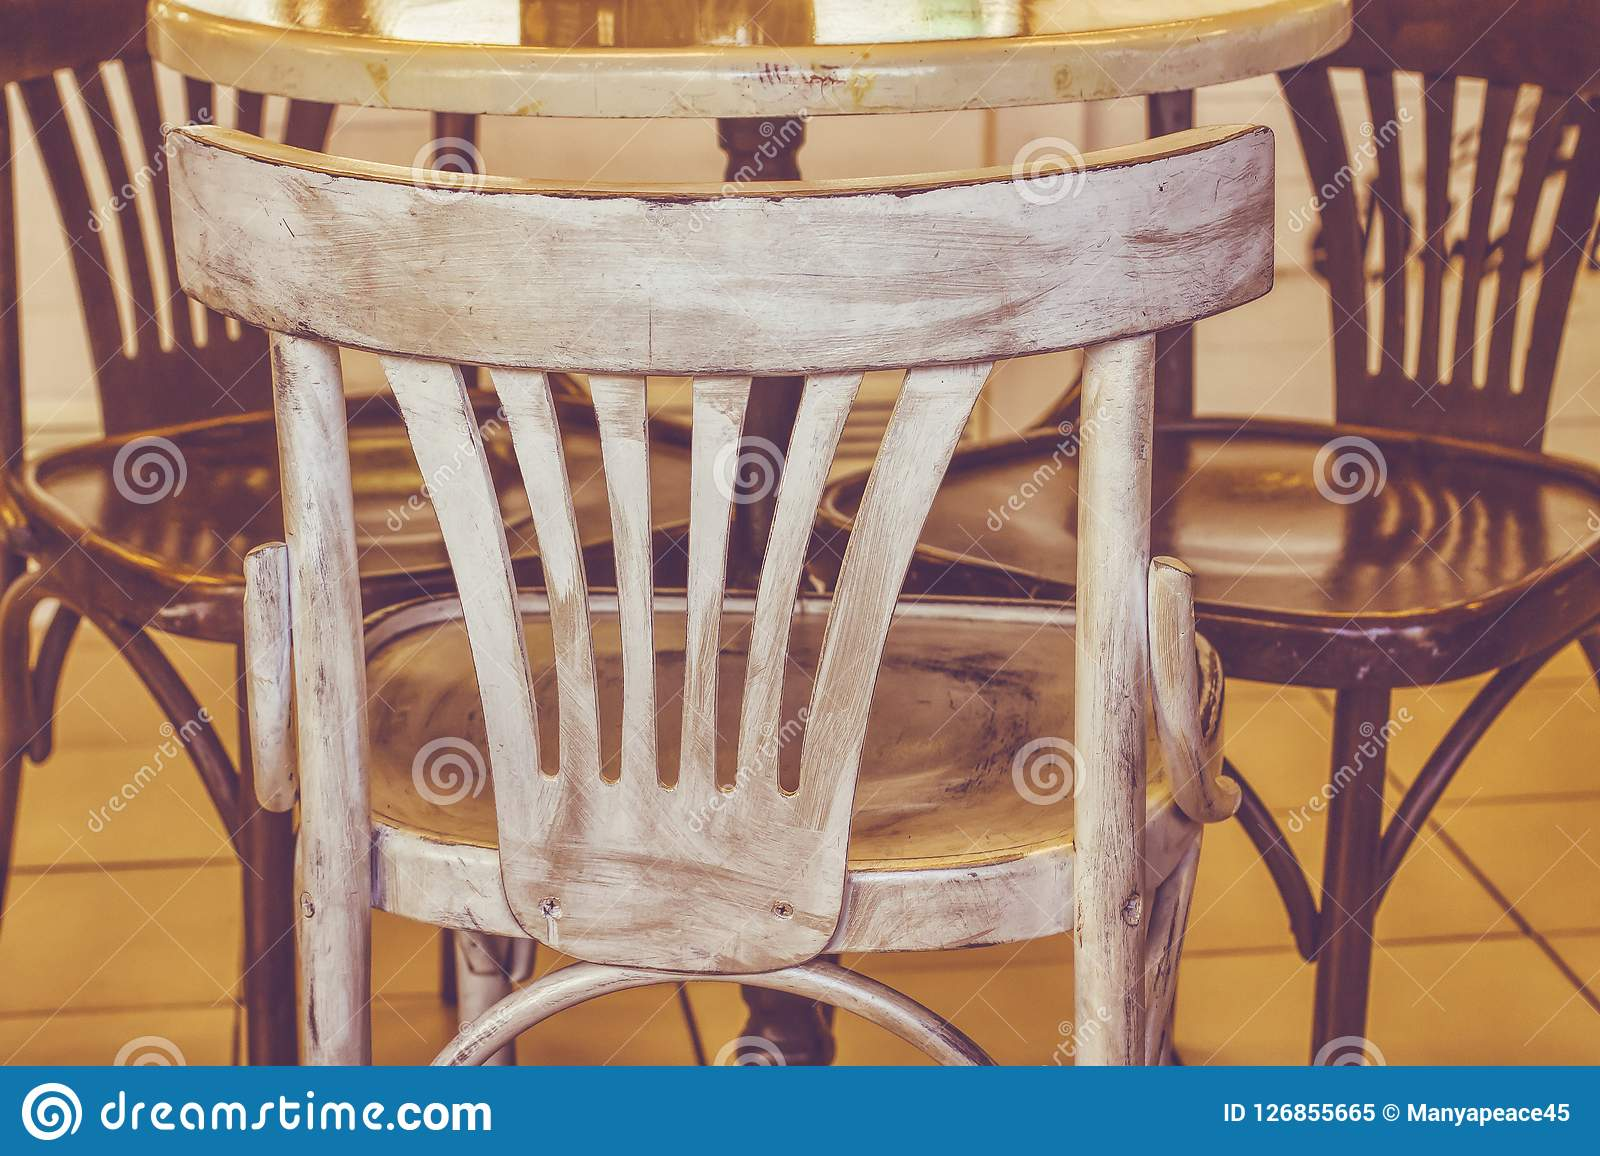 Cafe Design Restaurant Interior Vintage Ordinary Chairs Stock Image Image Of Cafe Brown 126855665